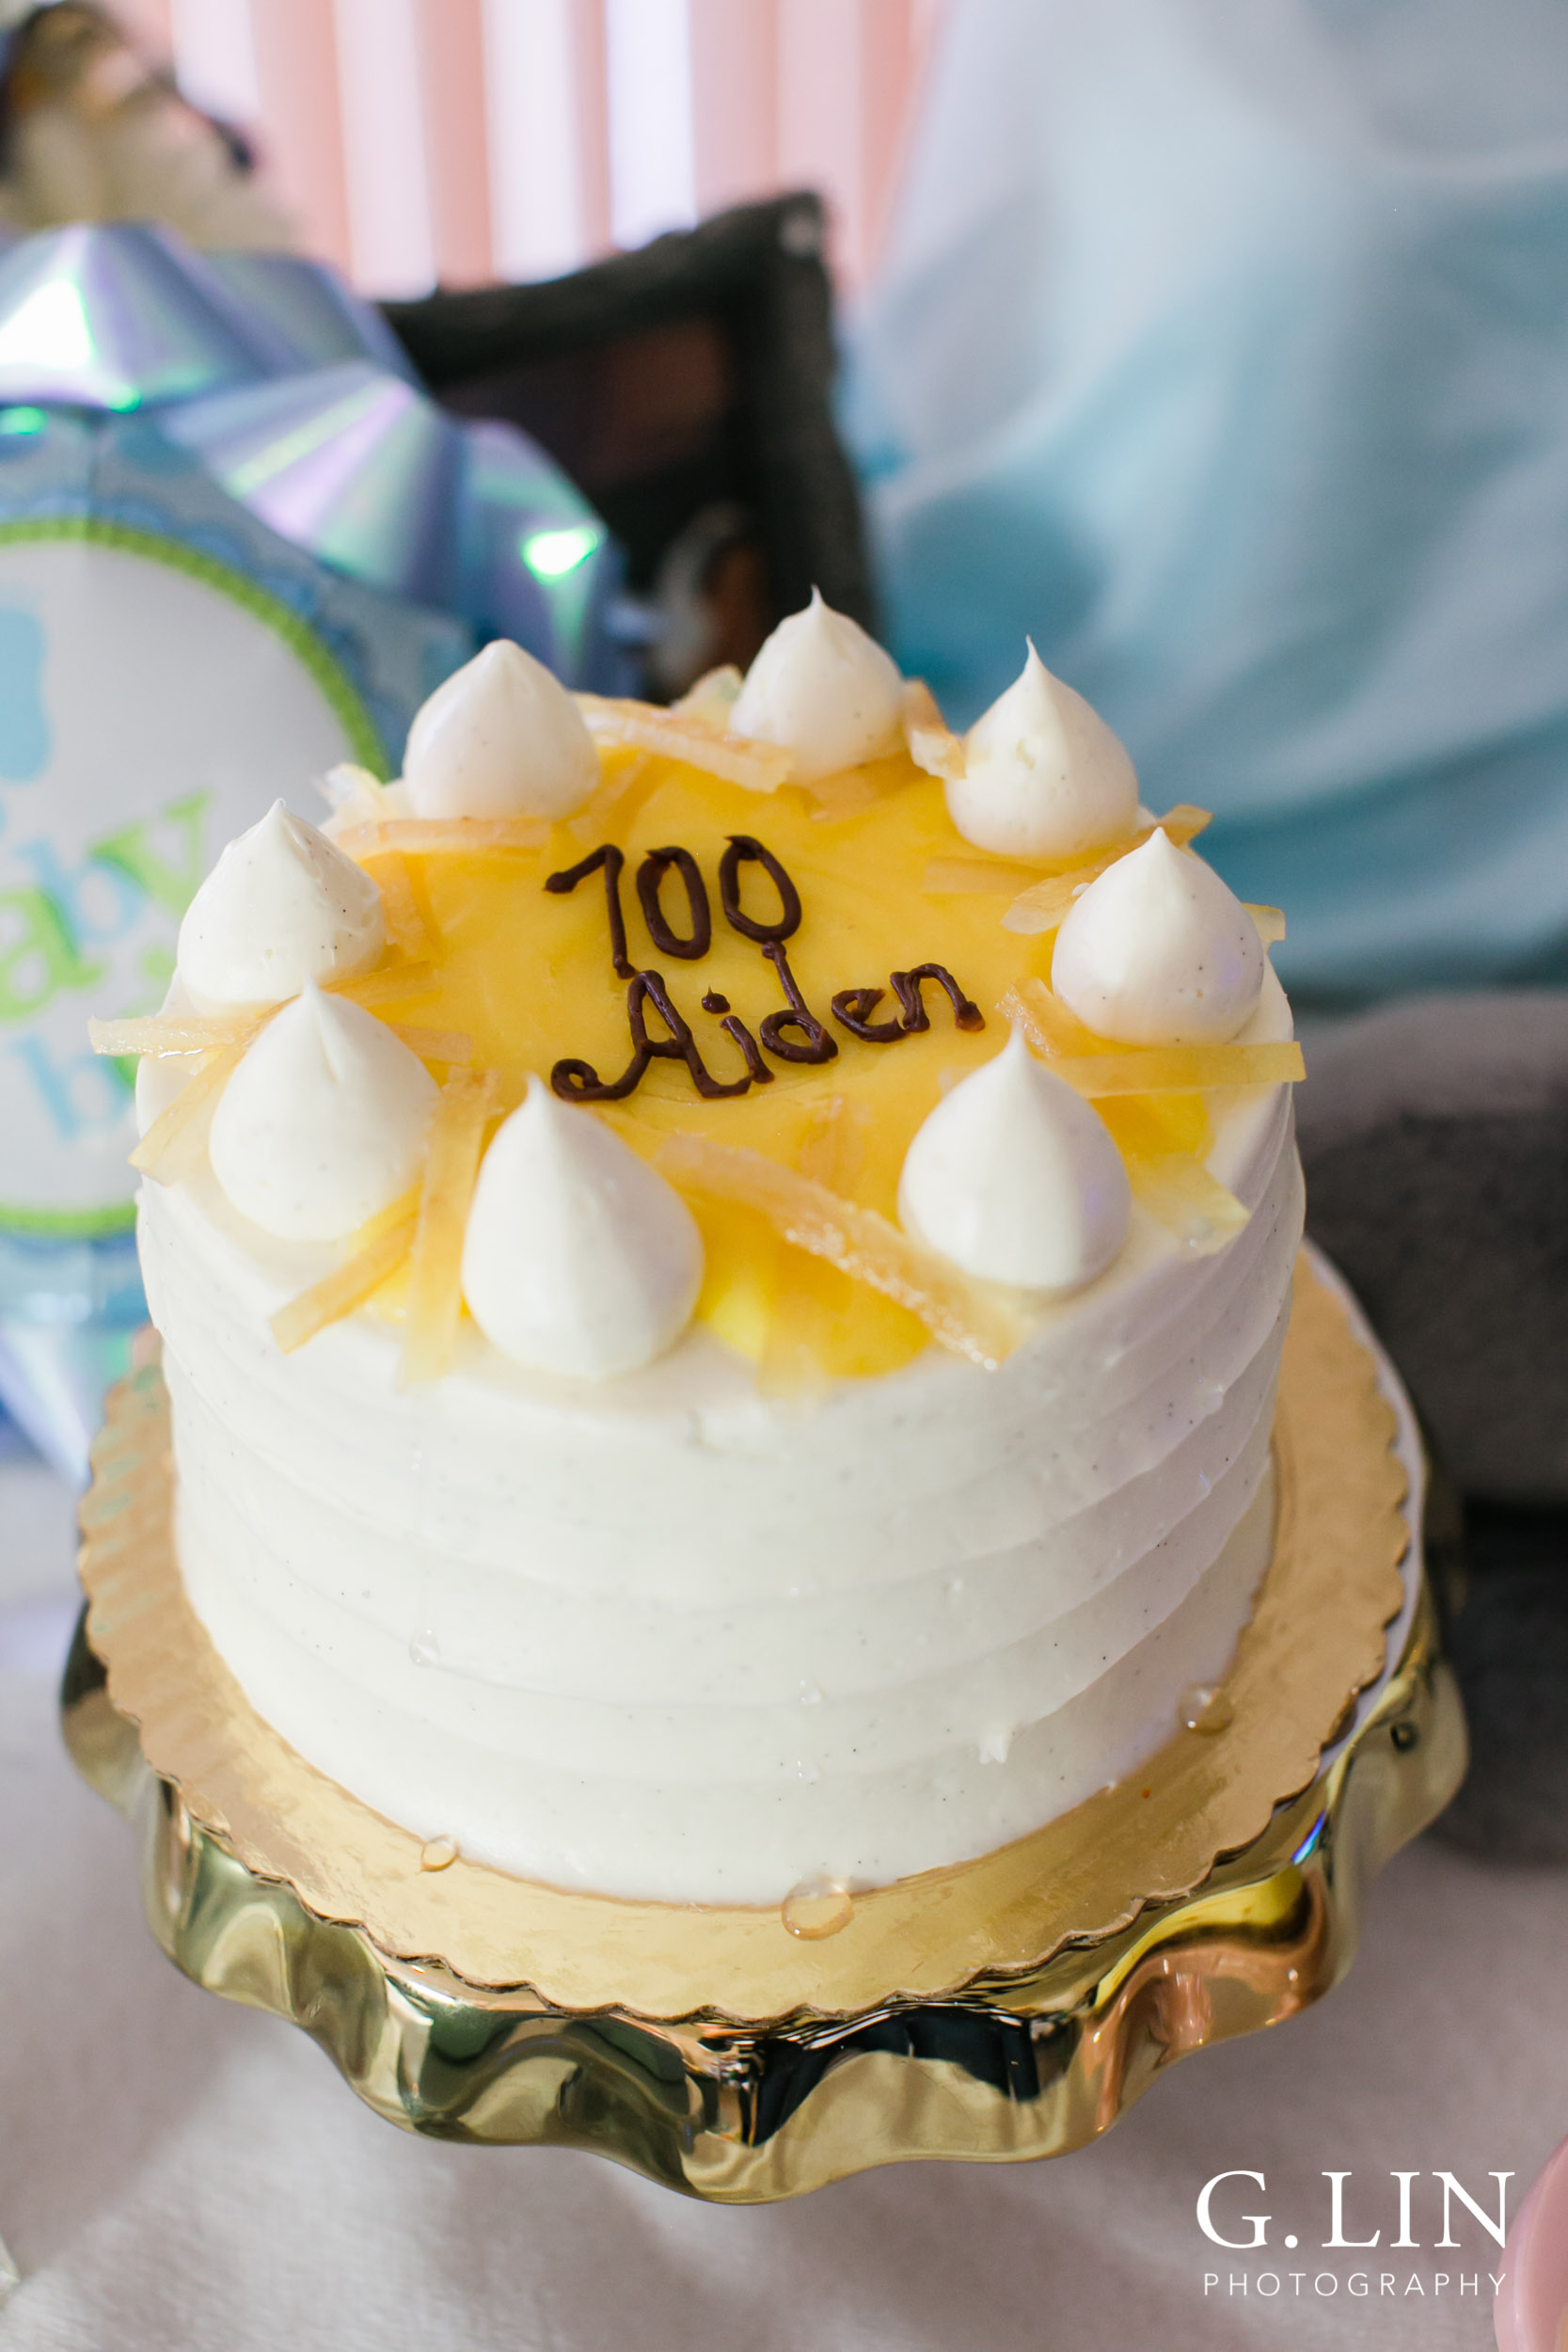 Durham Family Photographer | G. Lin Photography | Close up shot of birthday cake for baby